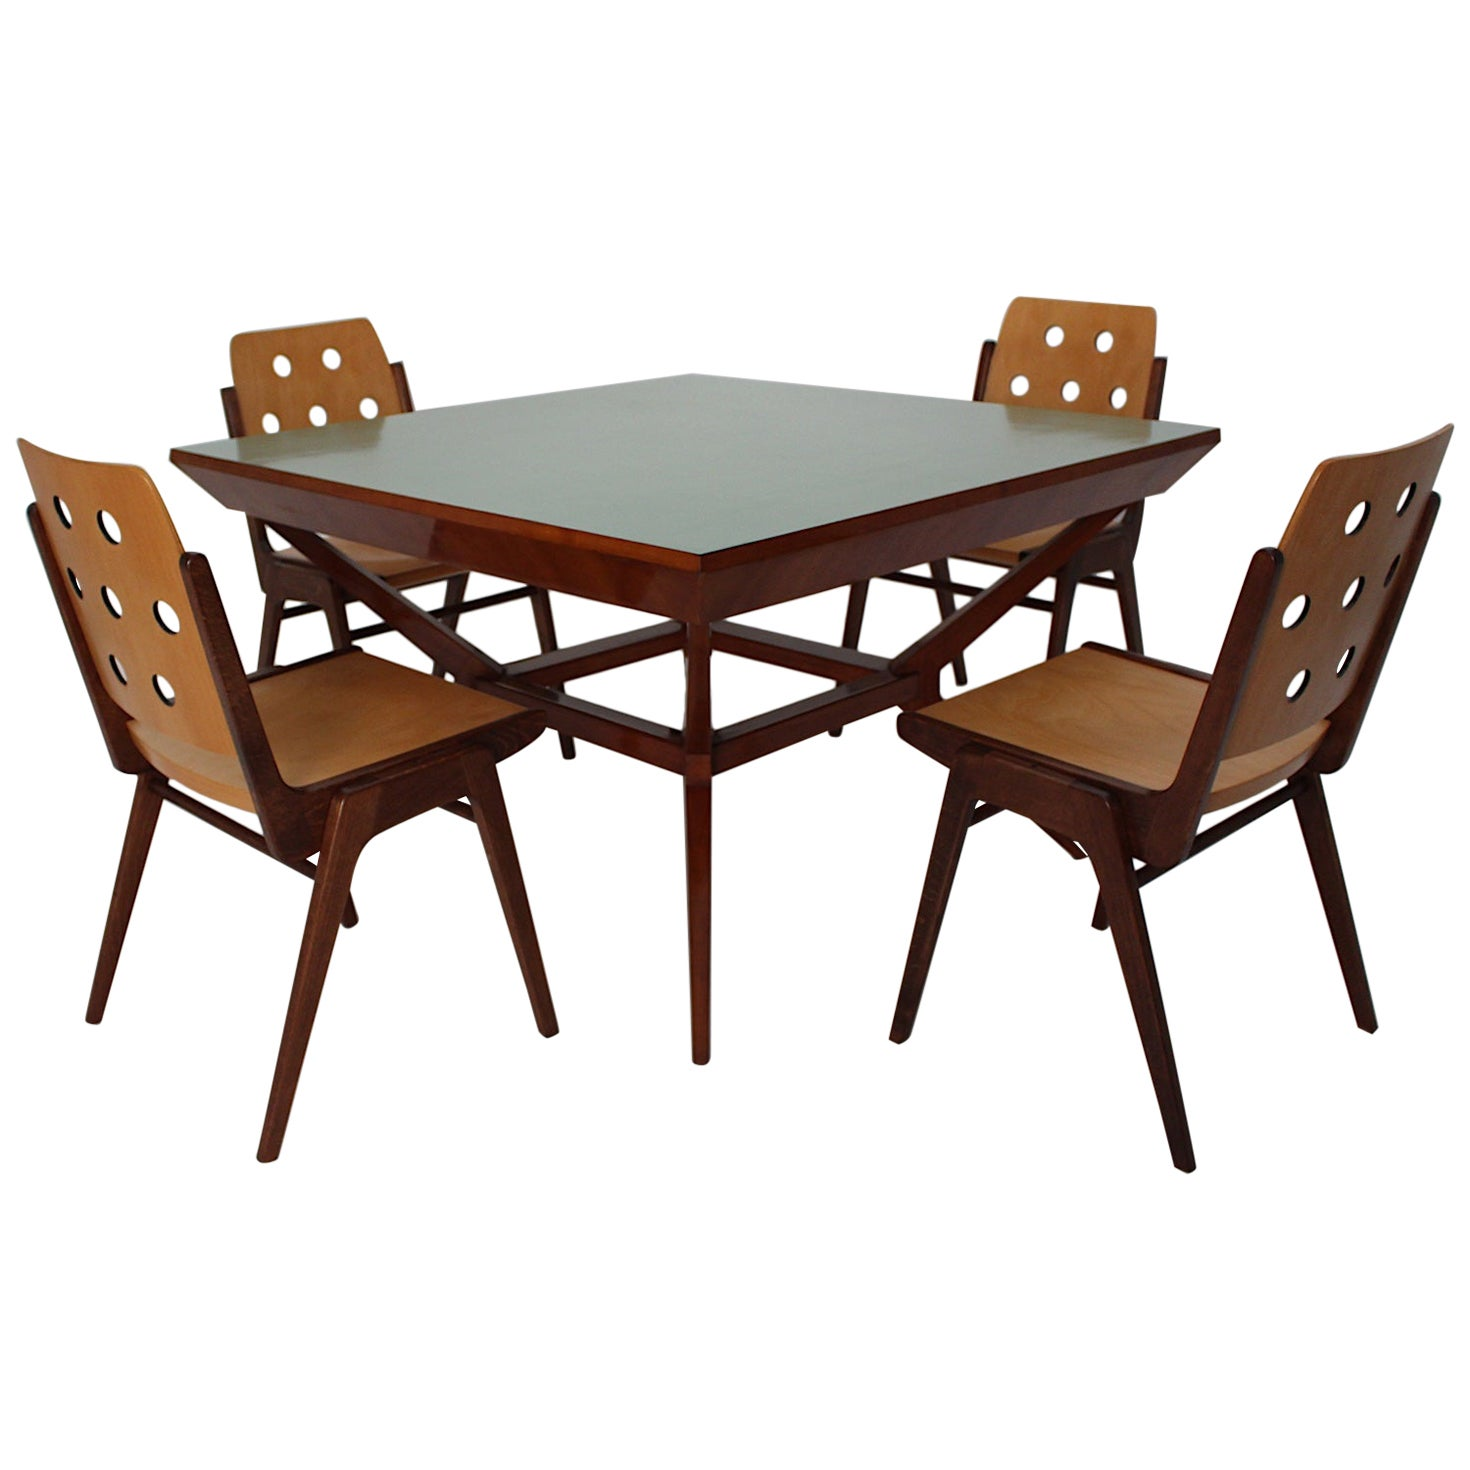 Mid-Century Modern Vintage Dining Chairs and Dining Table Franz Schuster, 1950s